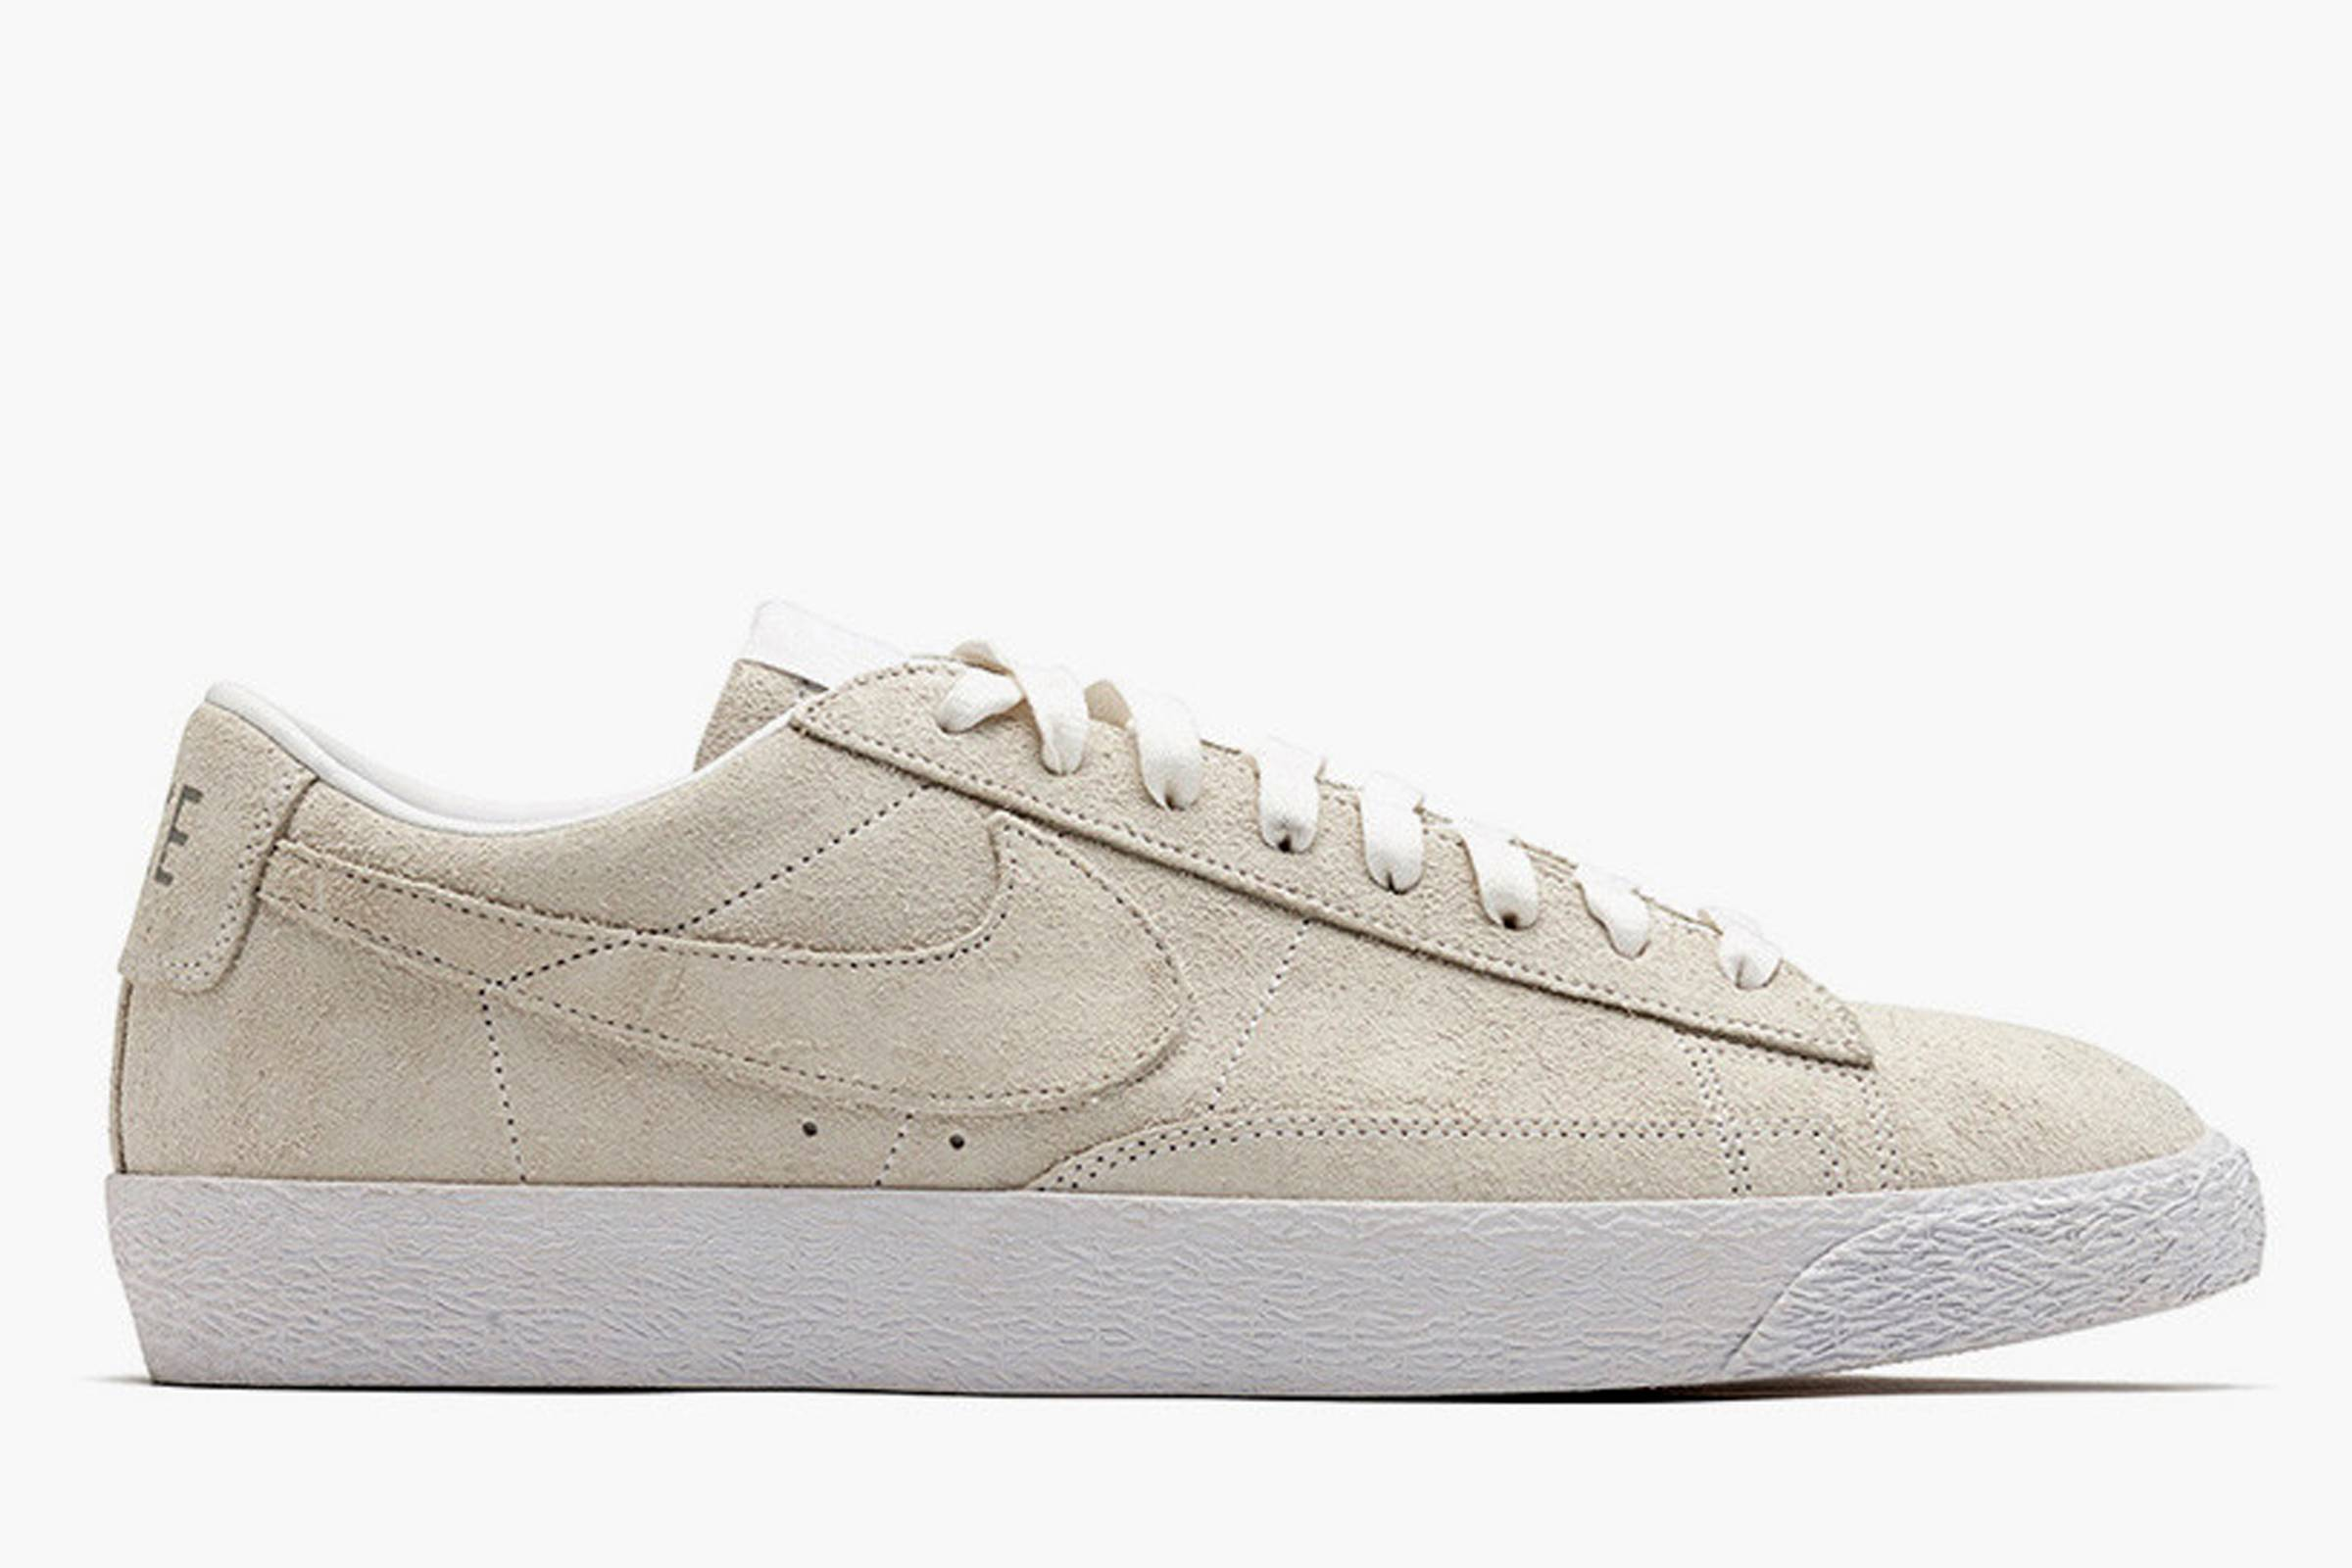 new concept de84c 22e9b Fragment Design x Nike Blazer Low SP 2014